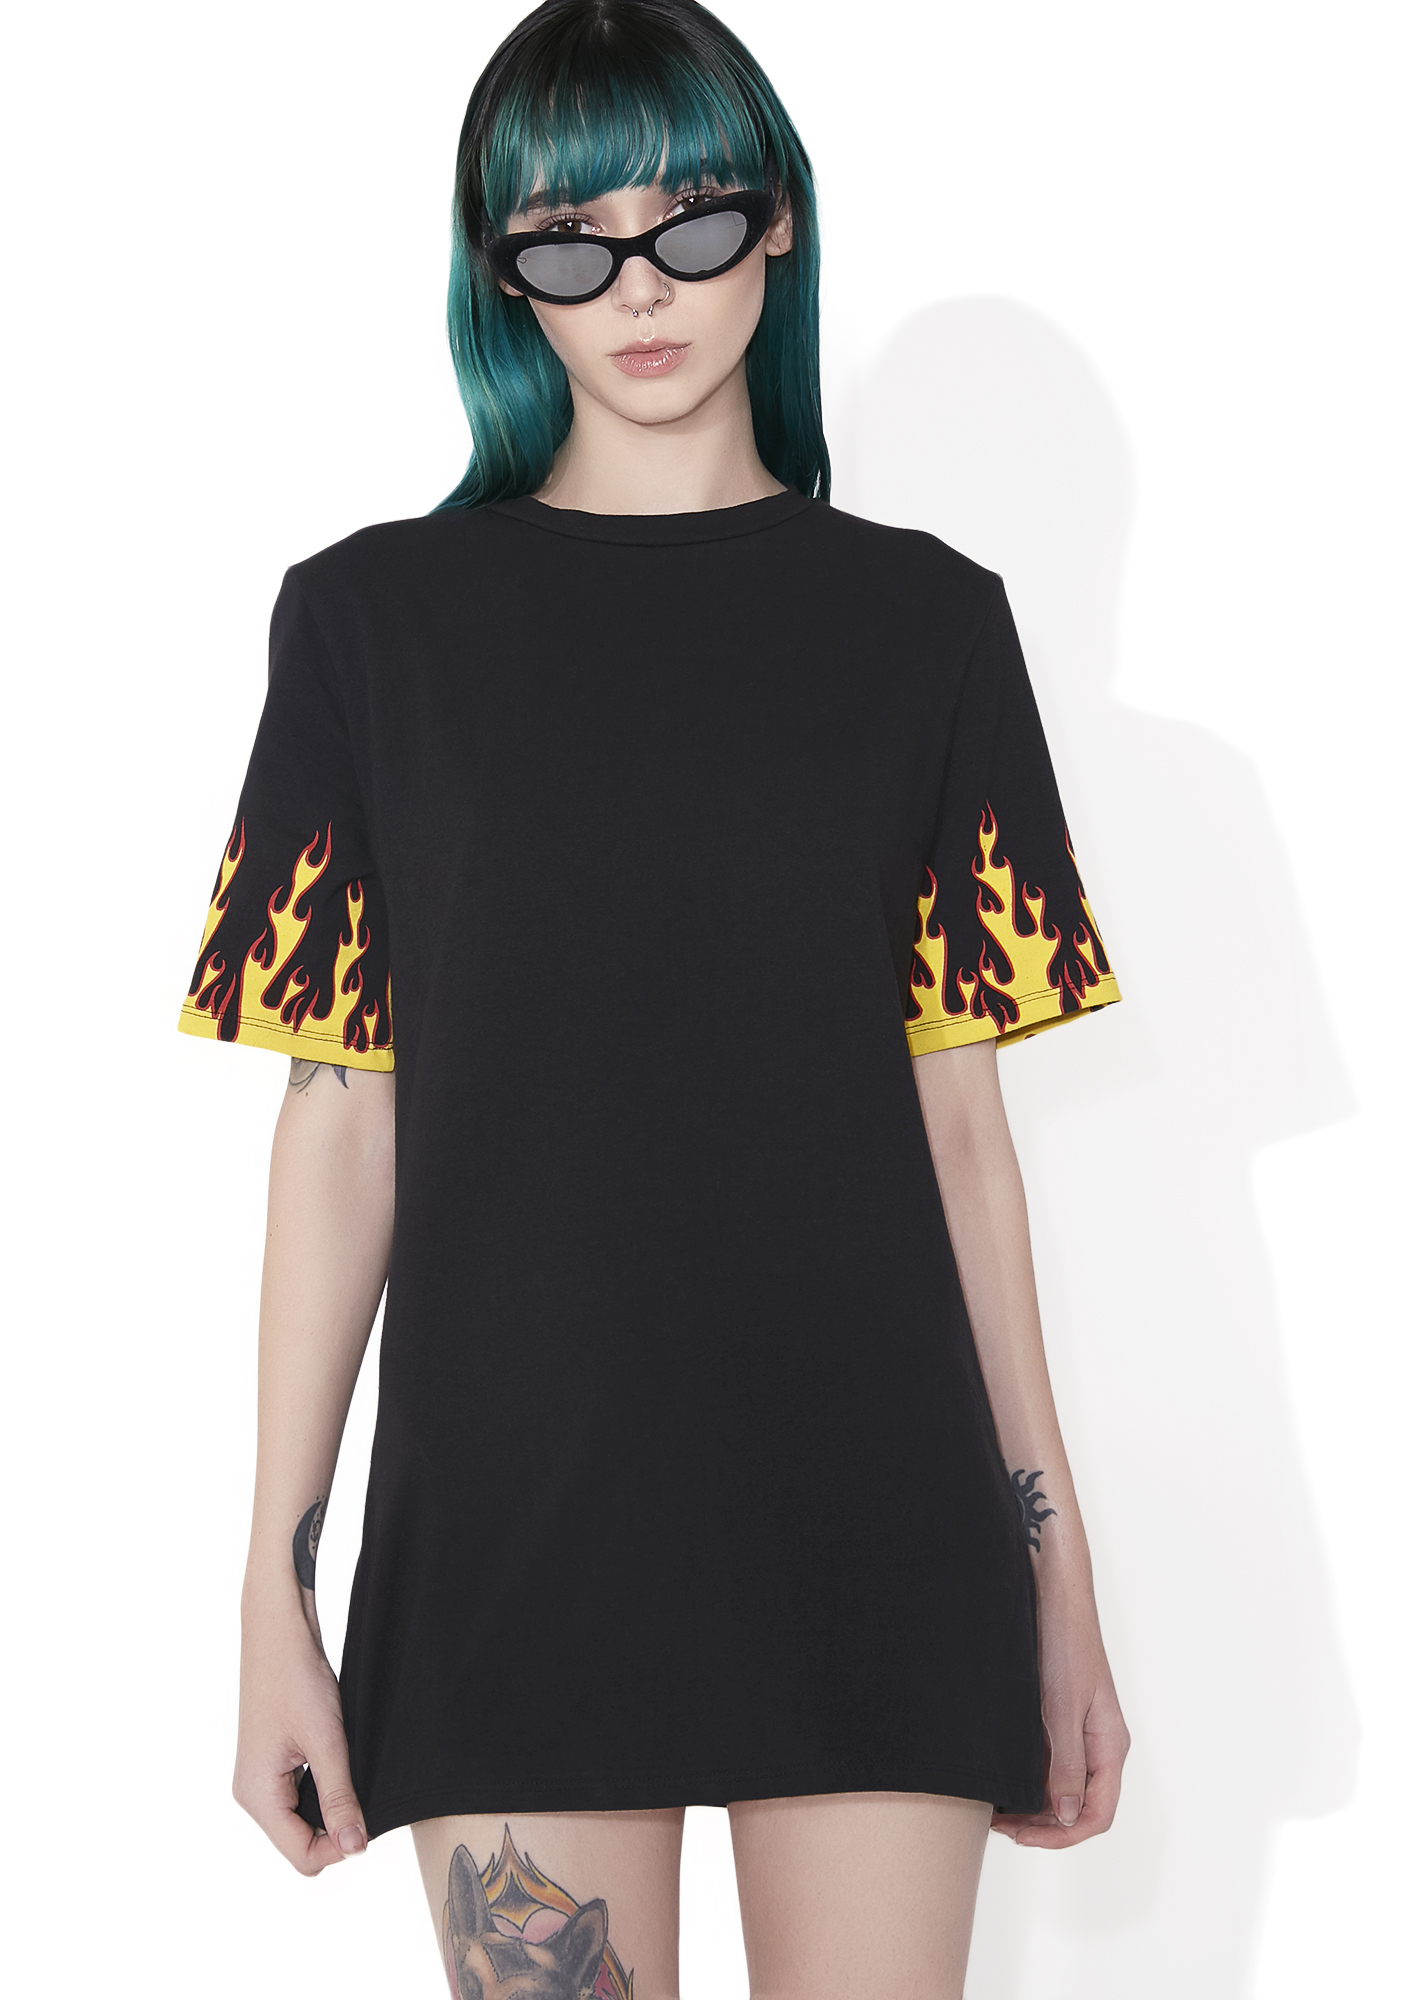 Black Short Sleeve Graphic Flames Tee